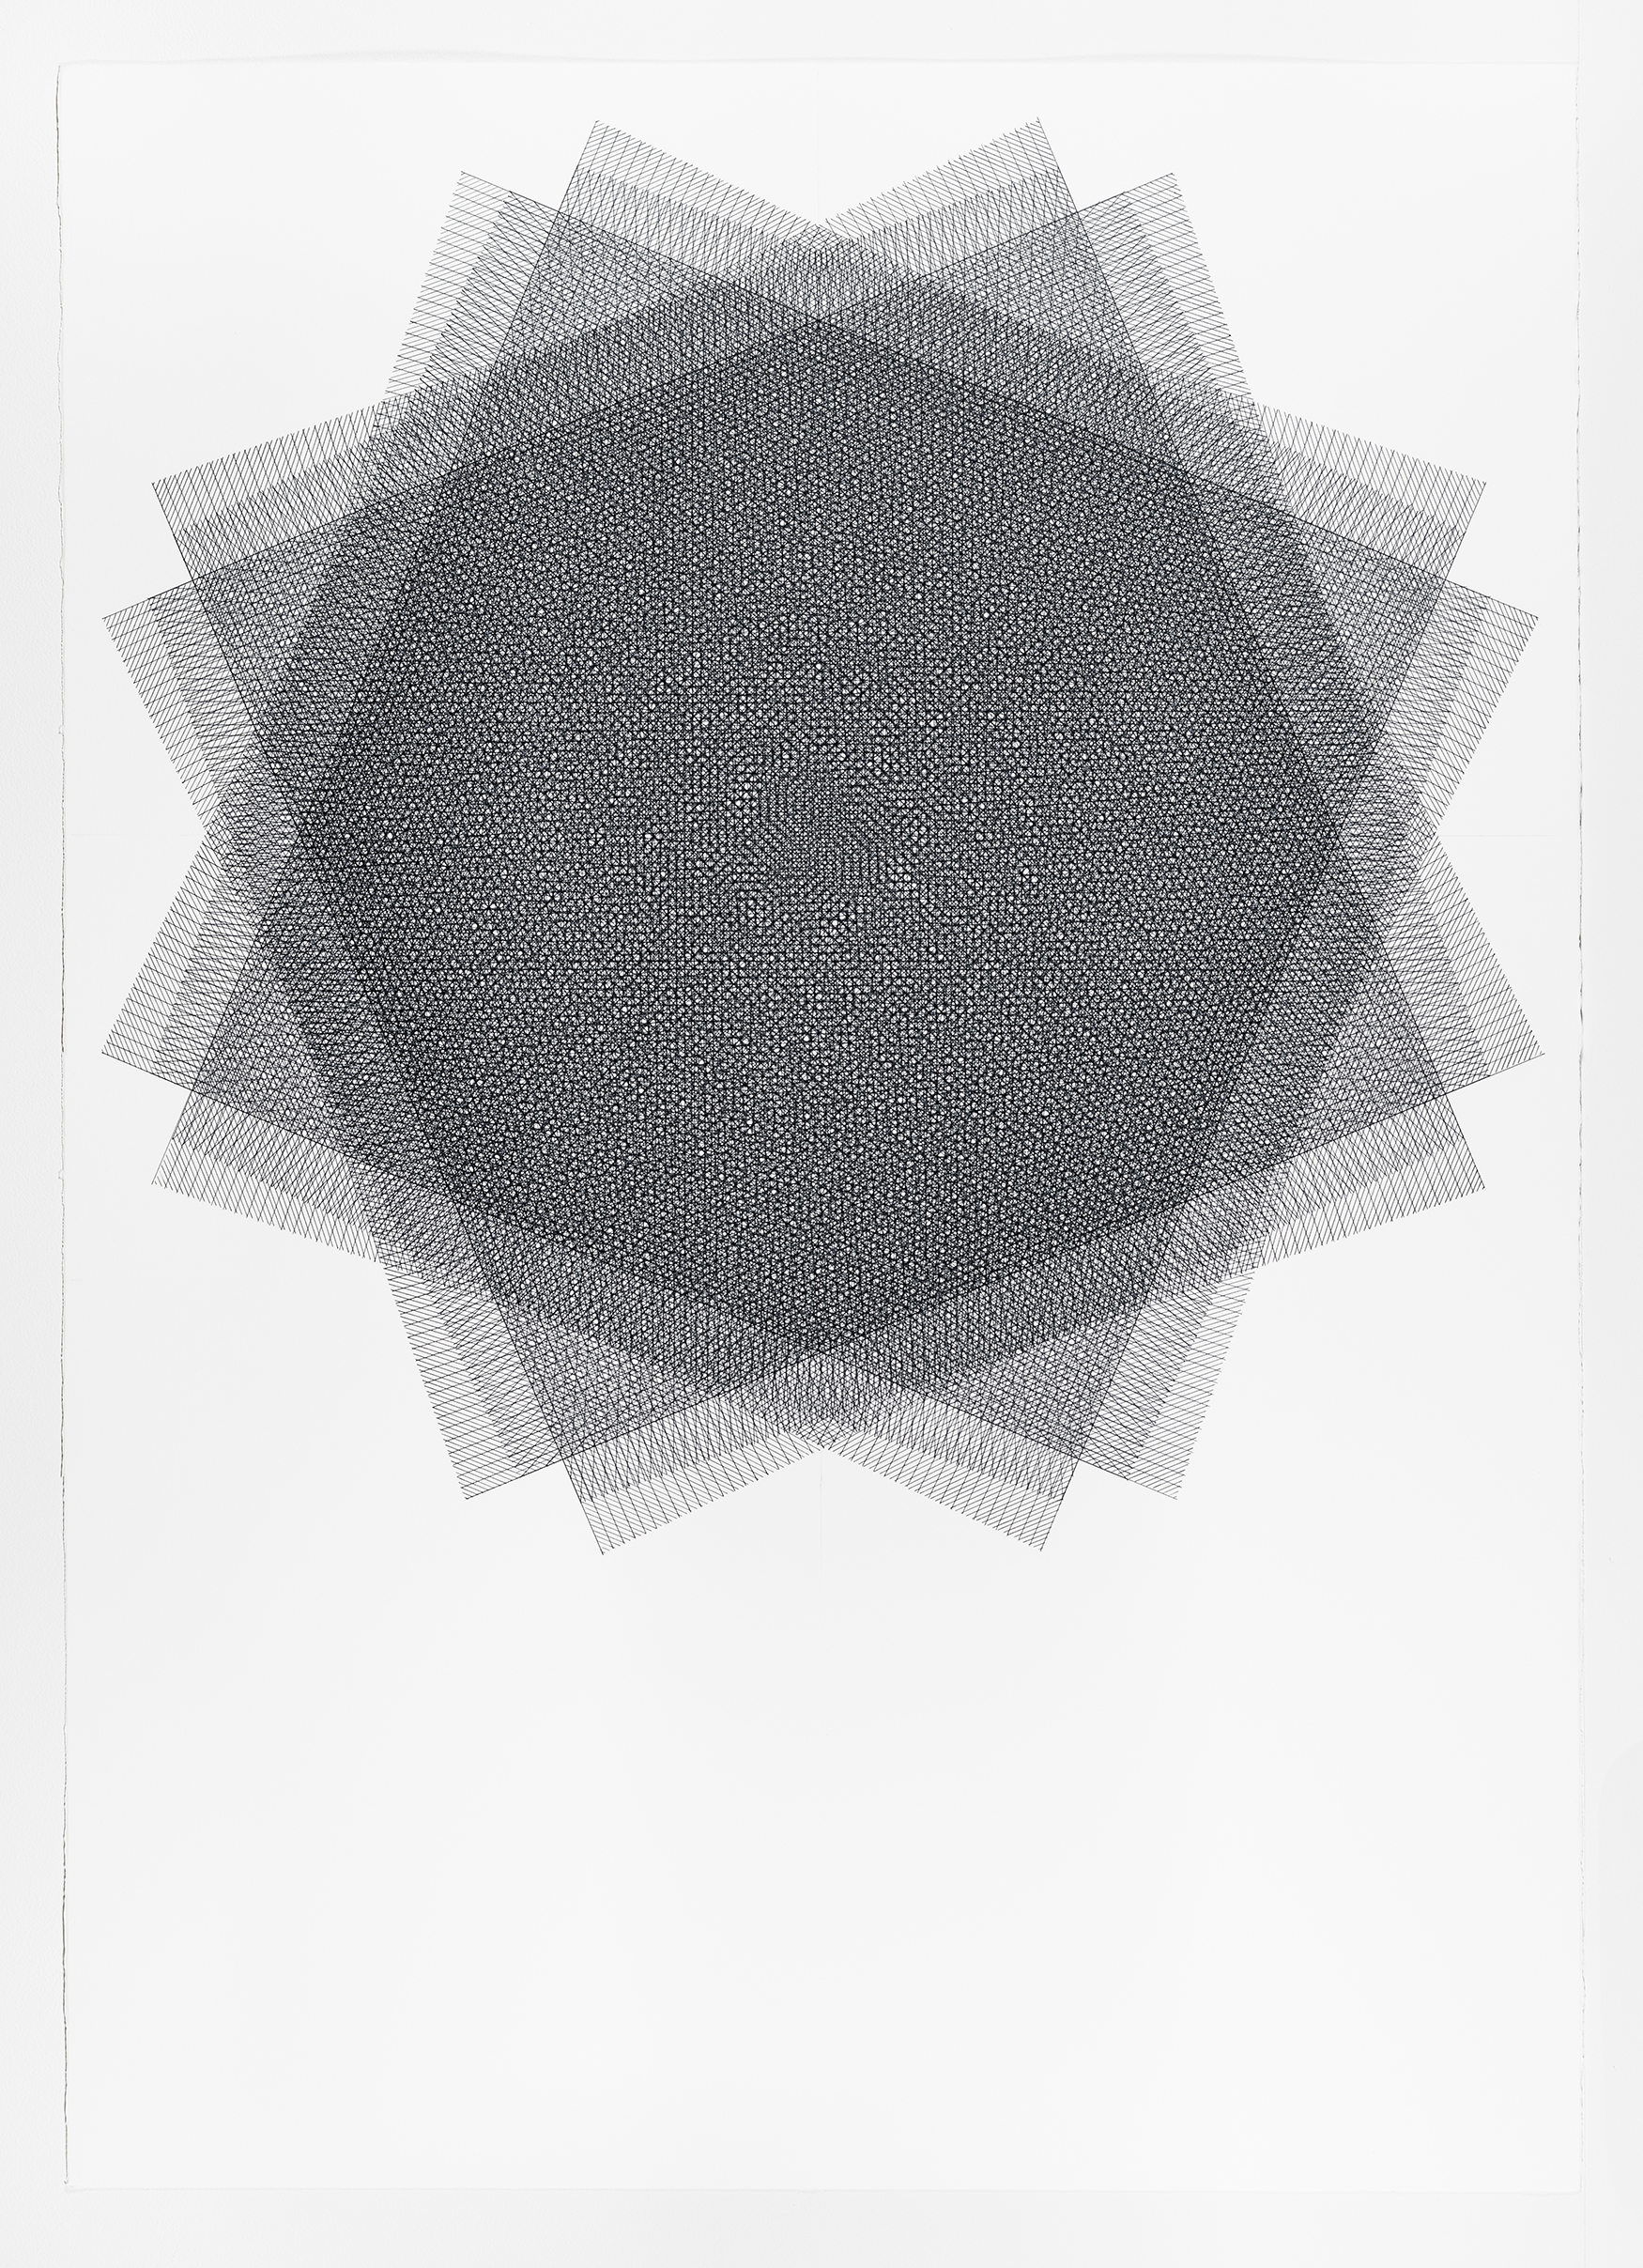 16 layers rotated 22.5 degrees, grey, 40 x 30 inches, 2015